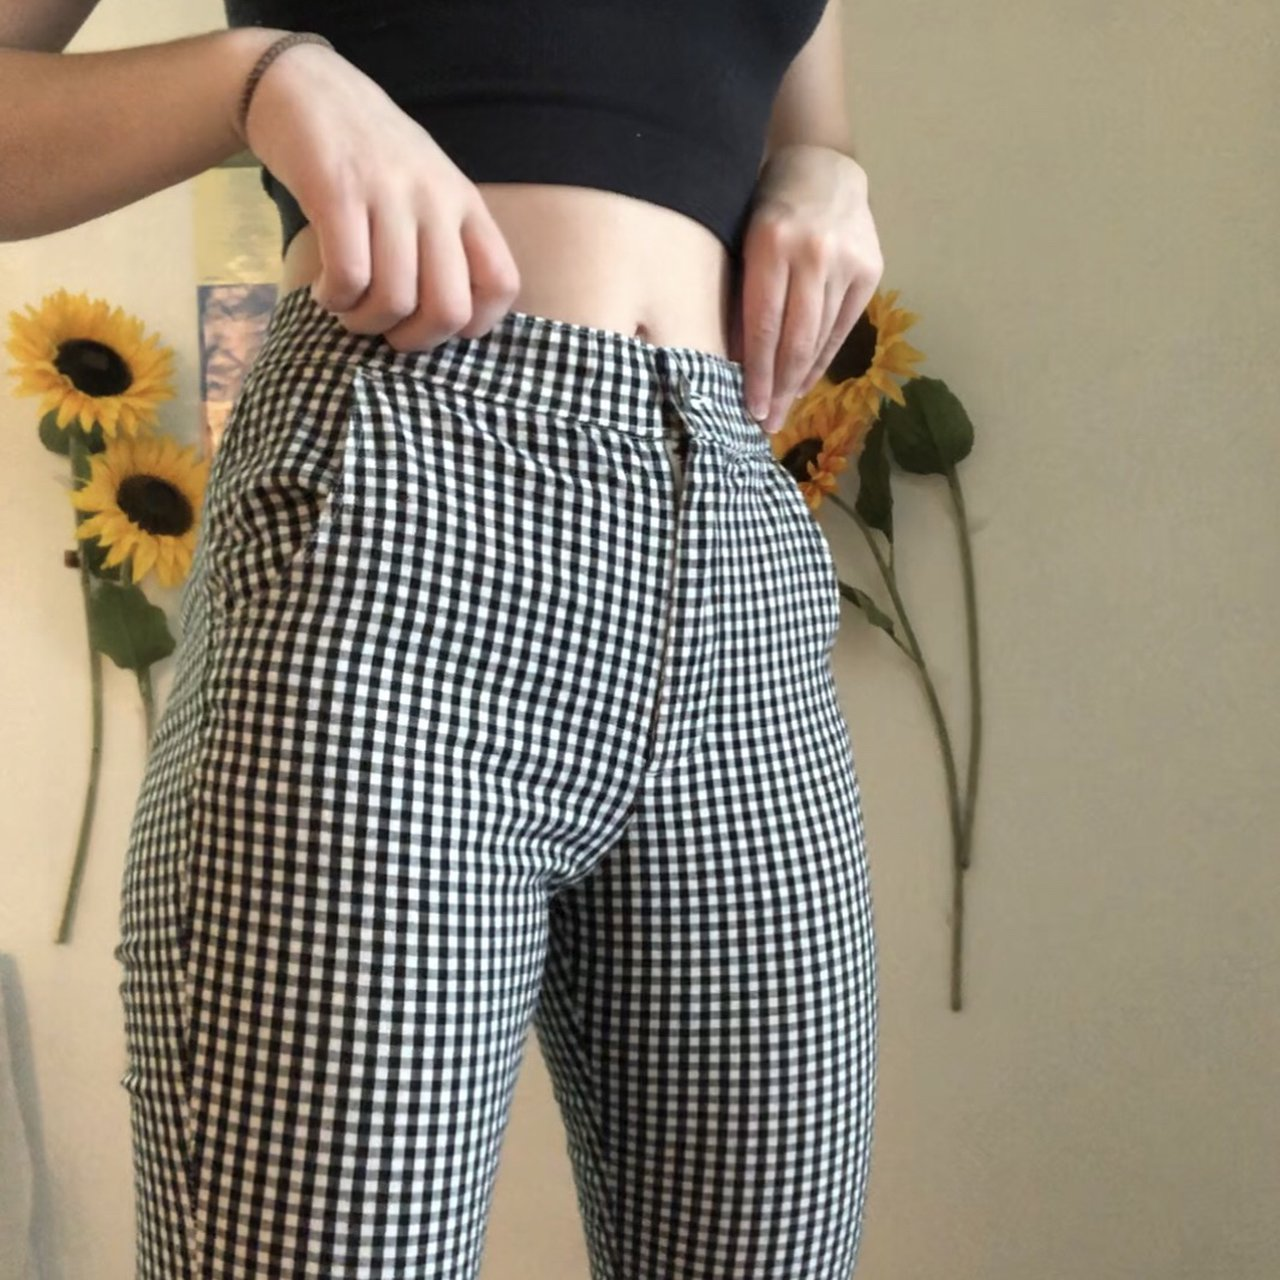 8a146c4eb4 🔲CROPPED GINGHAM PANTS🔳 super comfortable hollister pants! - Depop